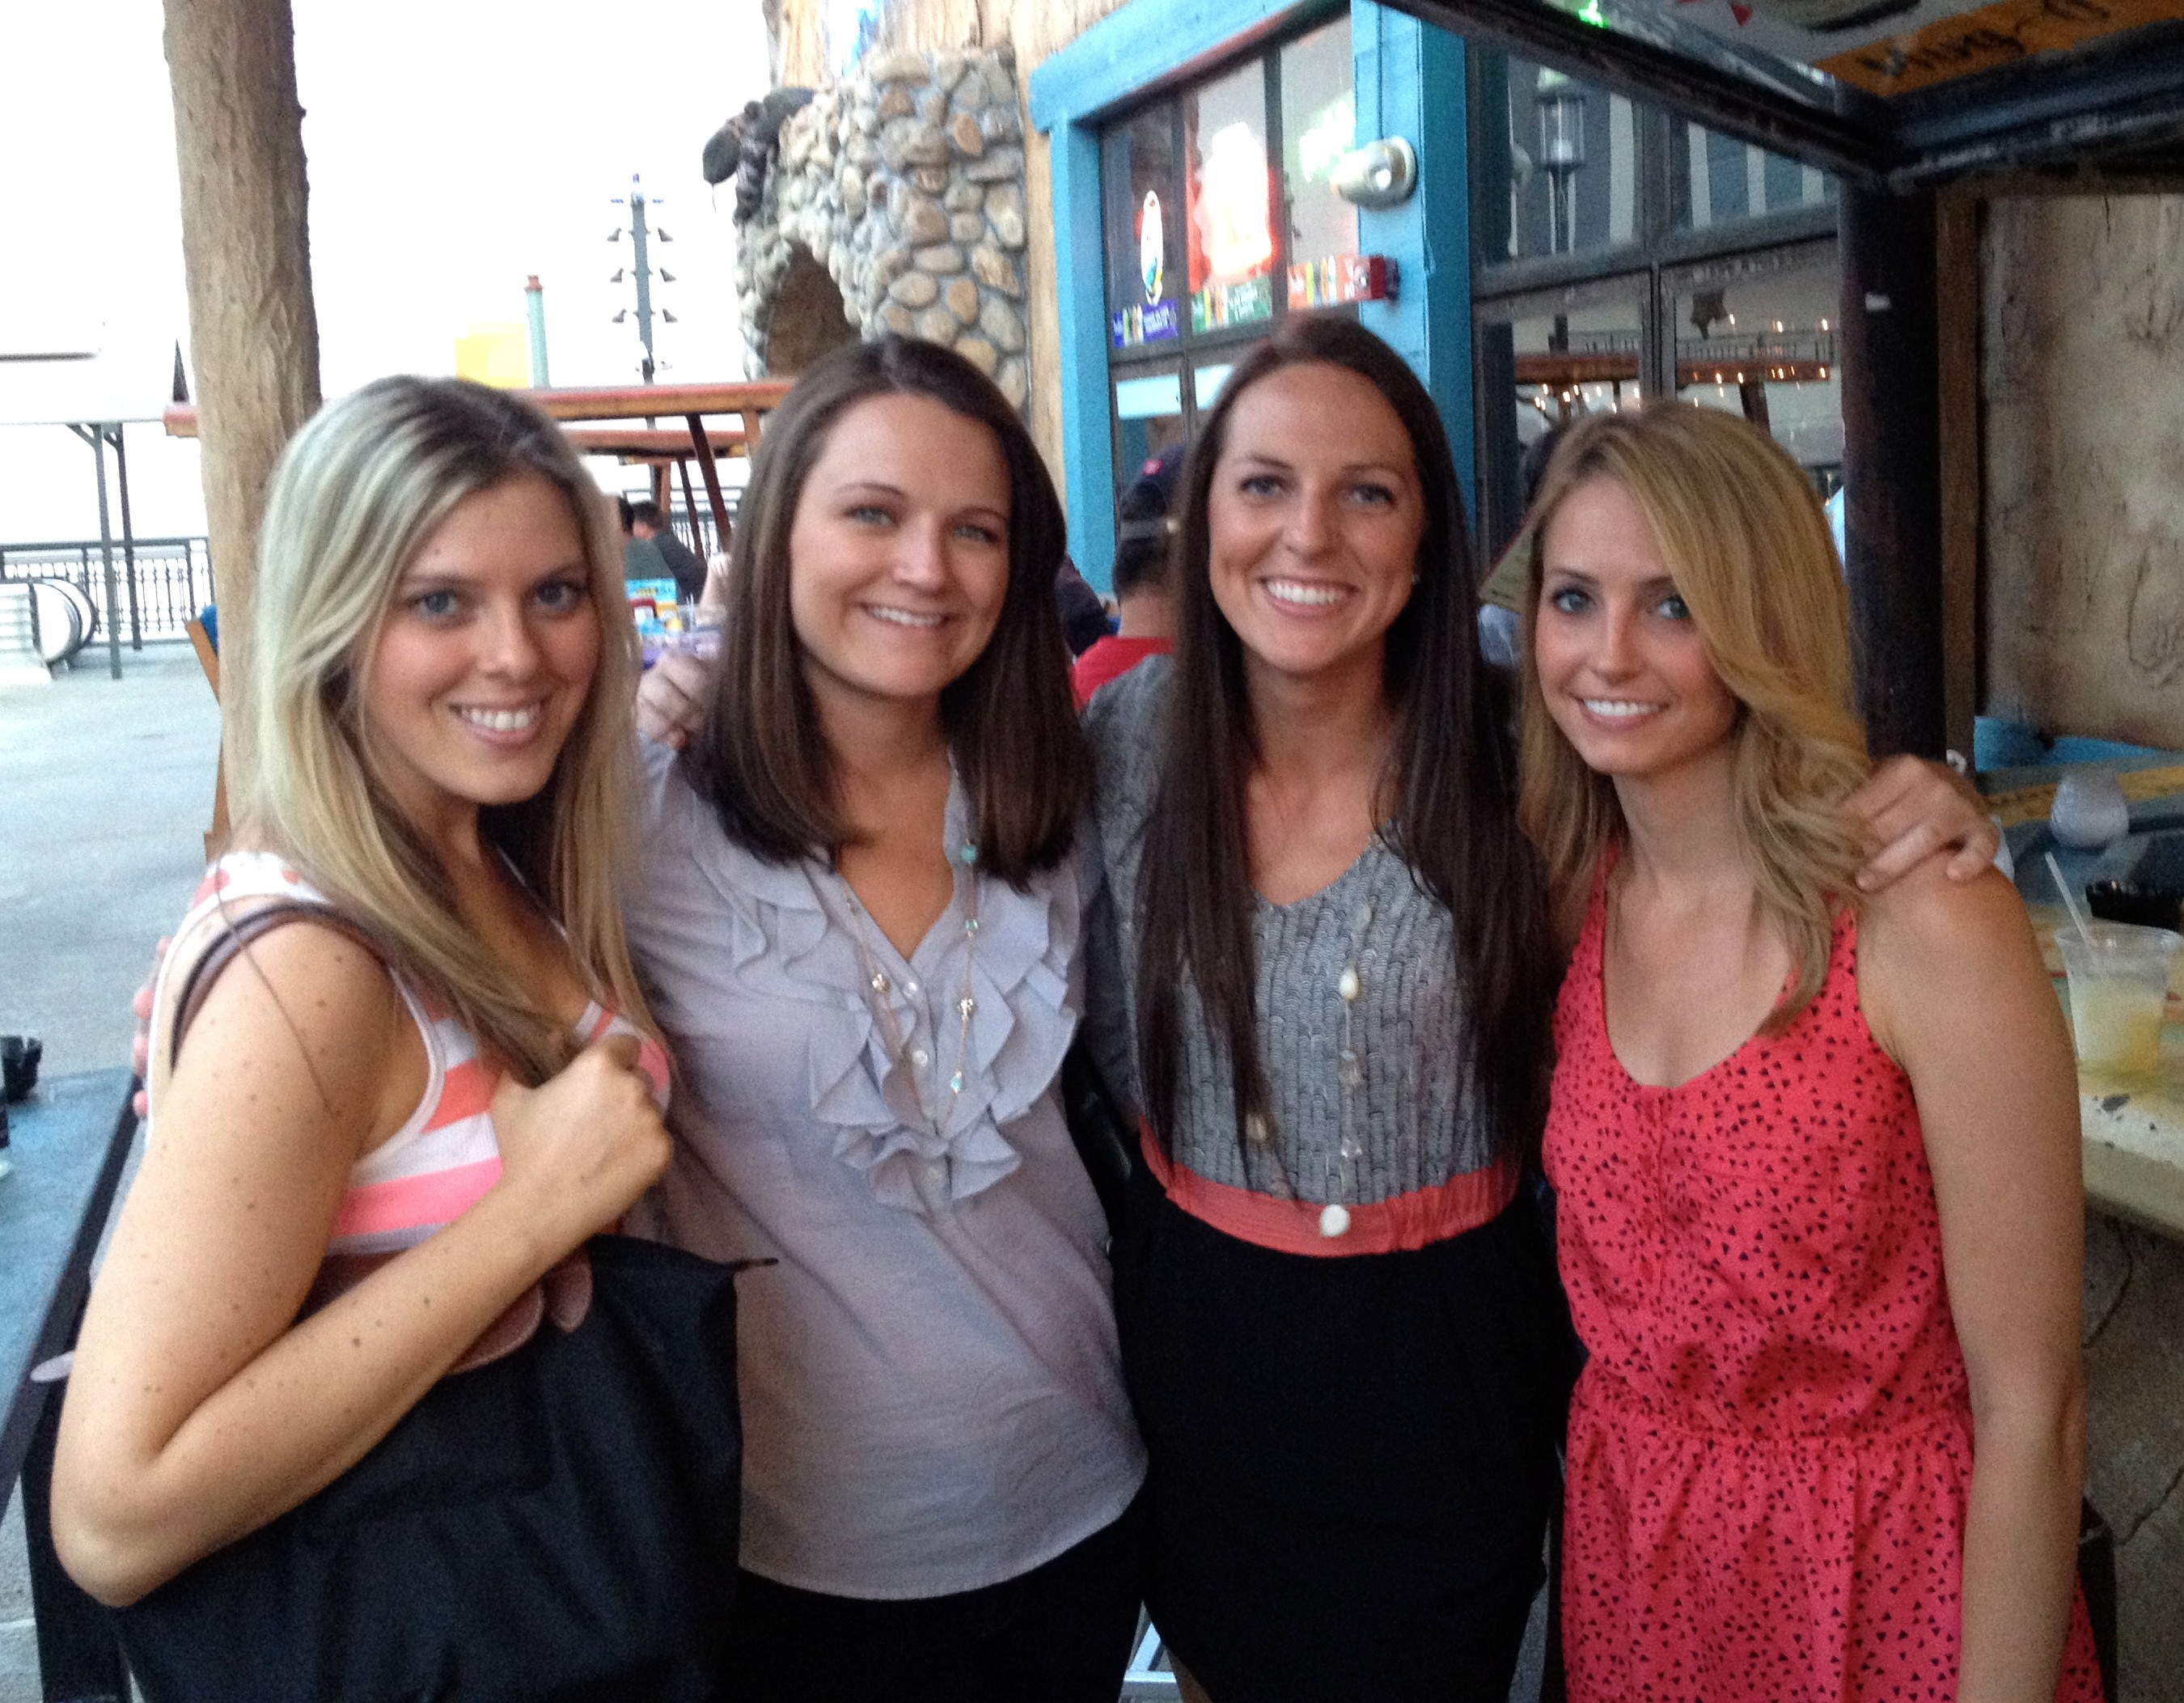 Girls at Adobe before comedy show